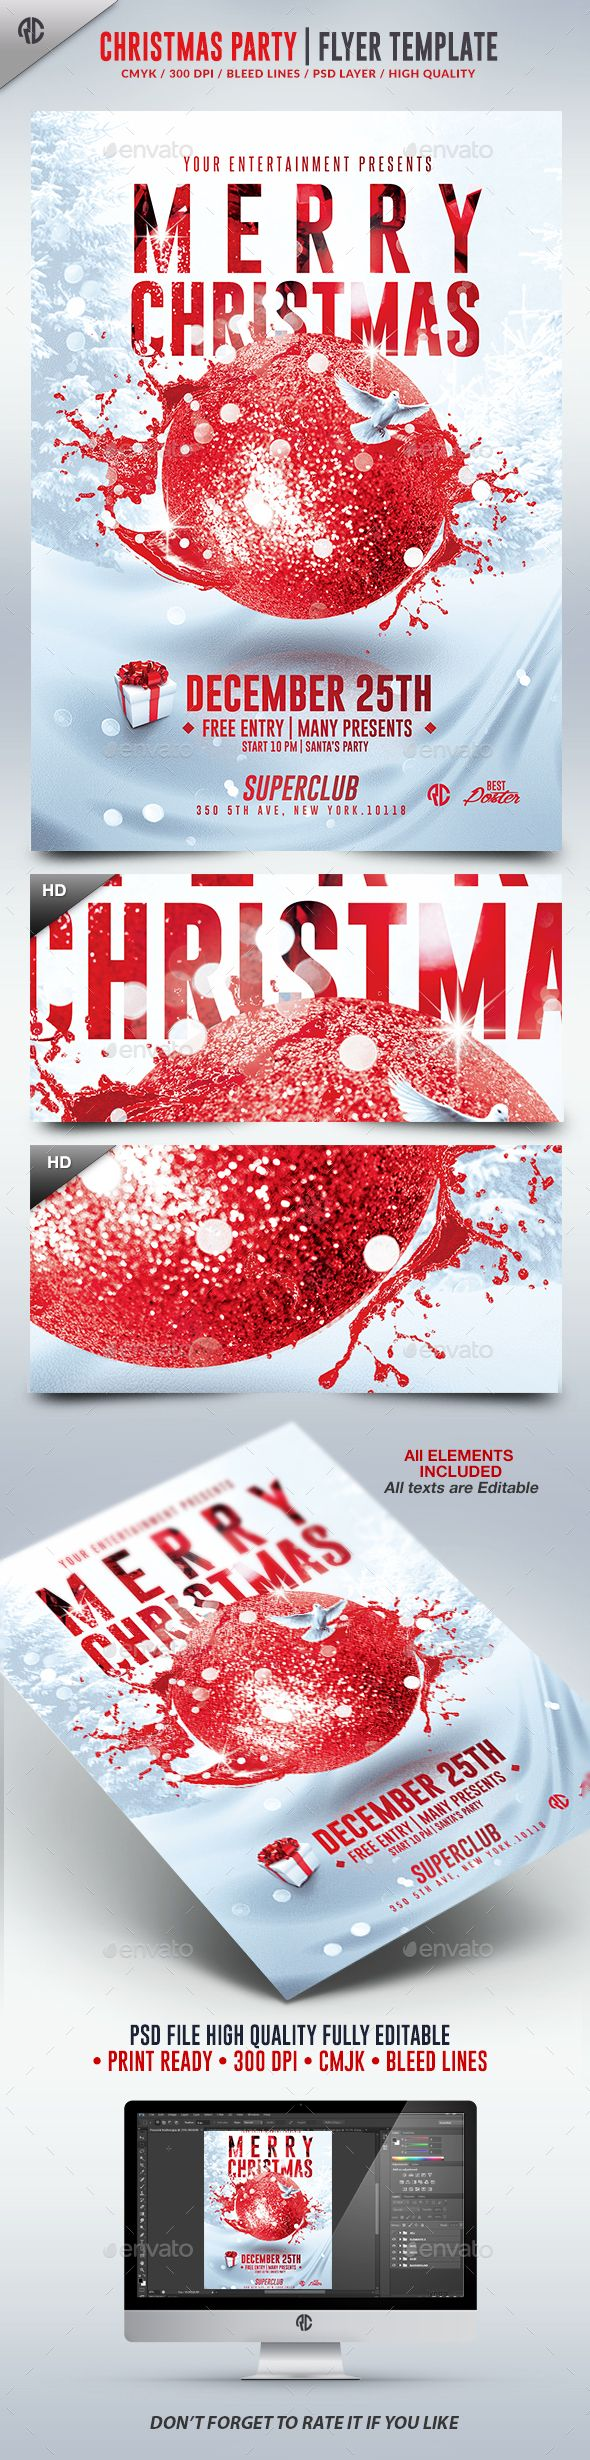 best ideas about advertising flyers photography christmas party 2016 psd flyer template